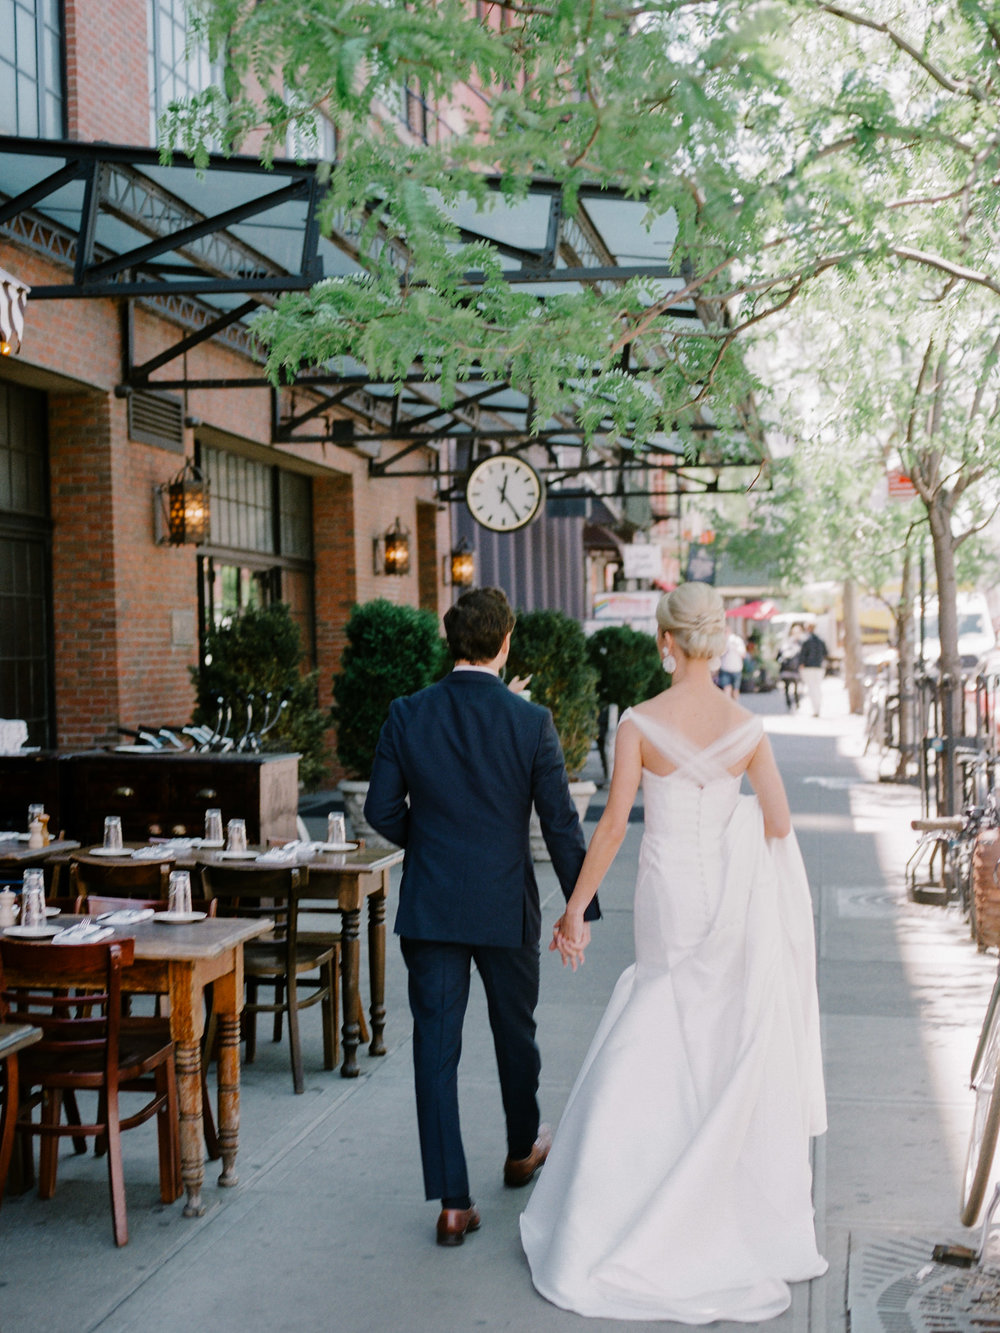 Intimate-NYC_wedding_ by Tanya Isaeva-93.jpg